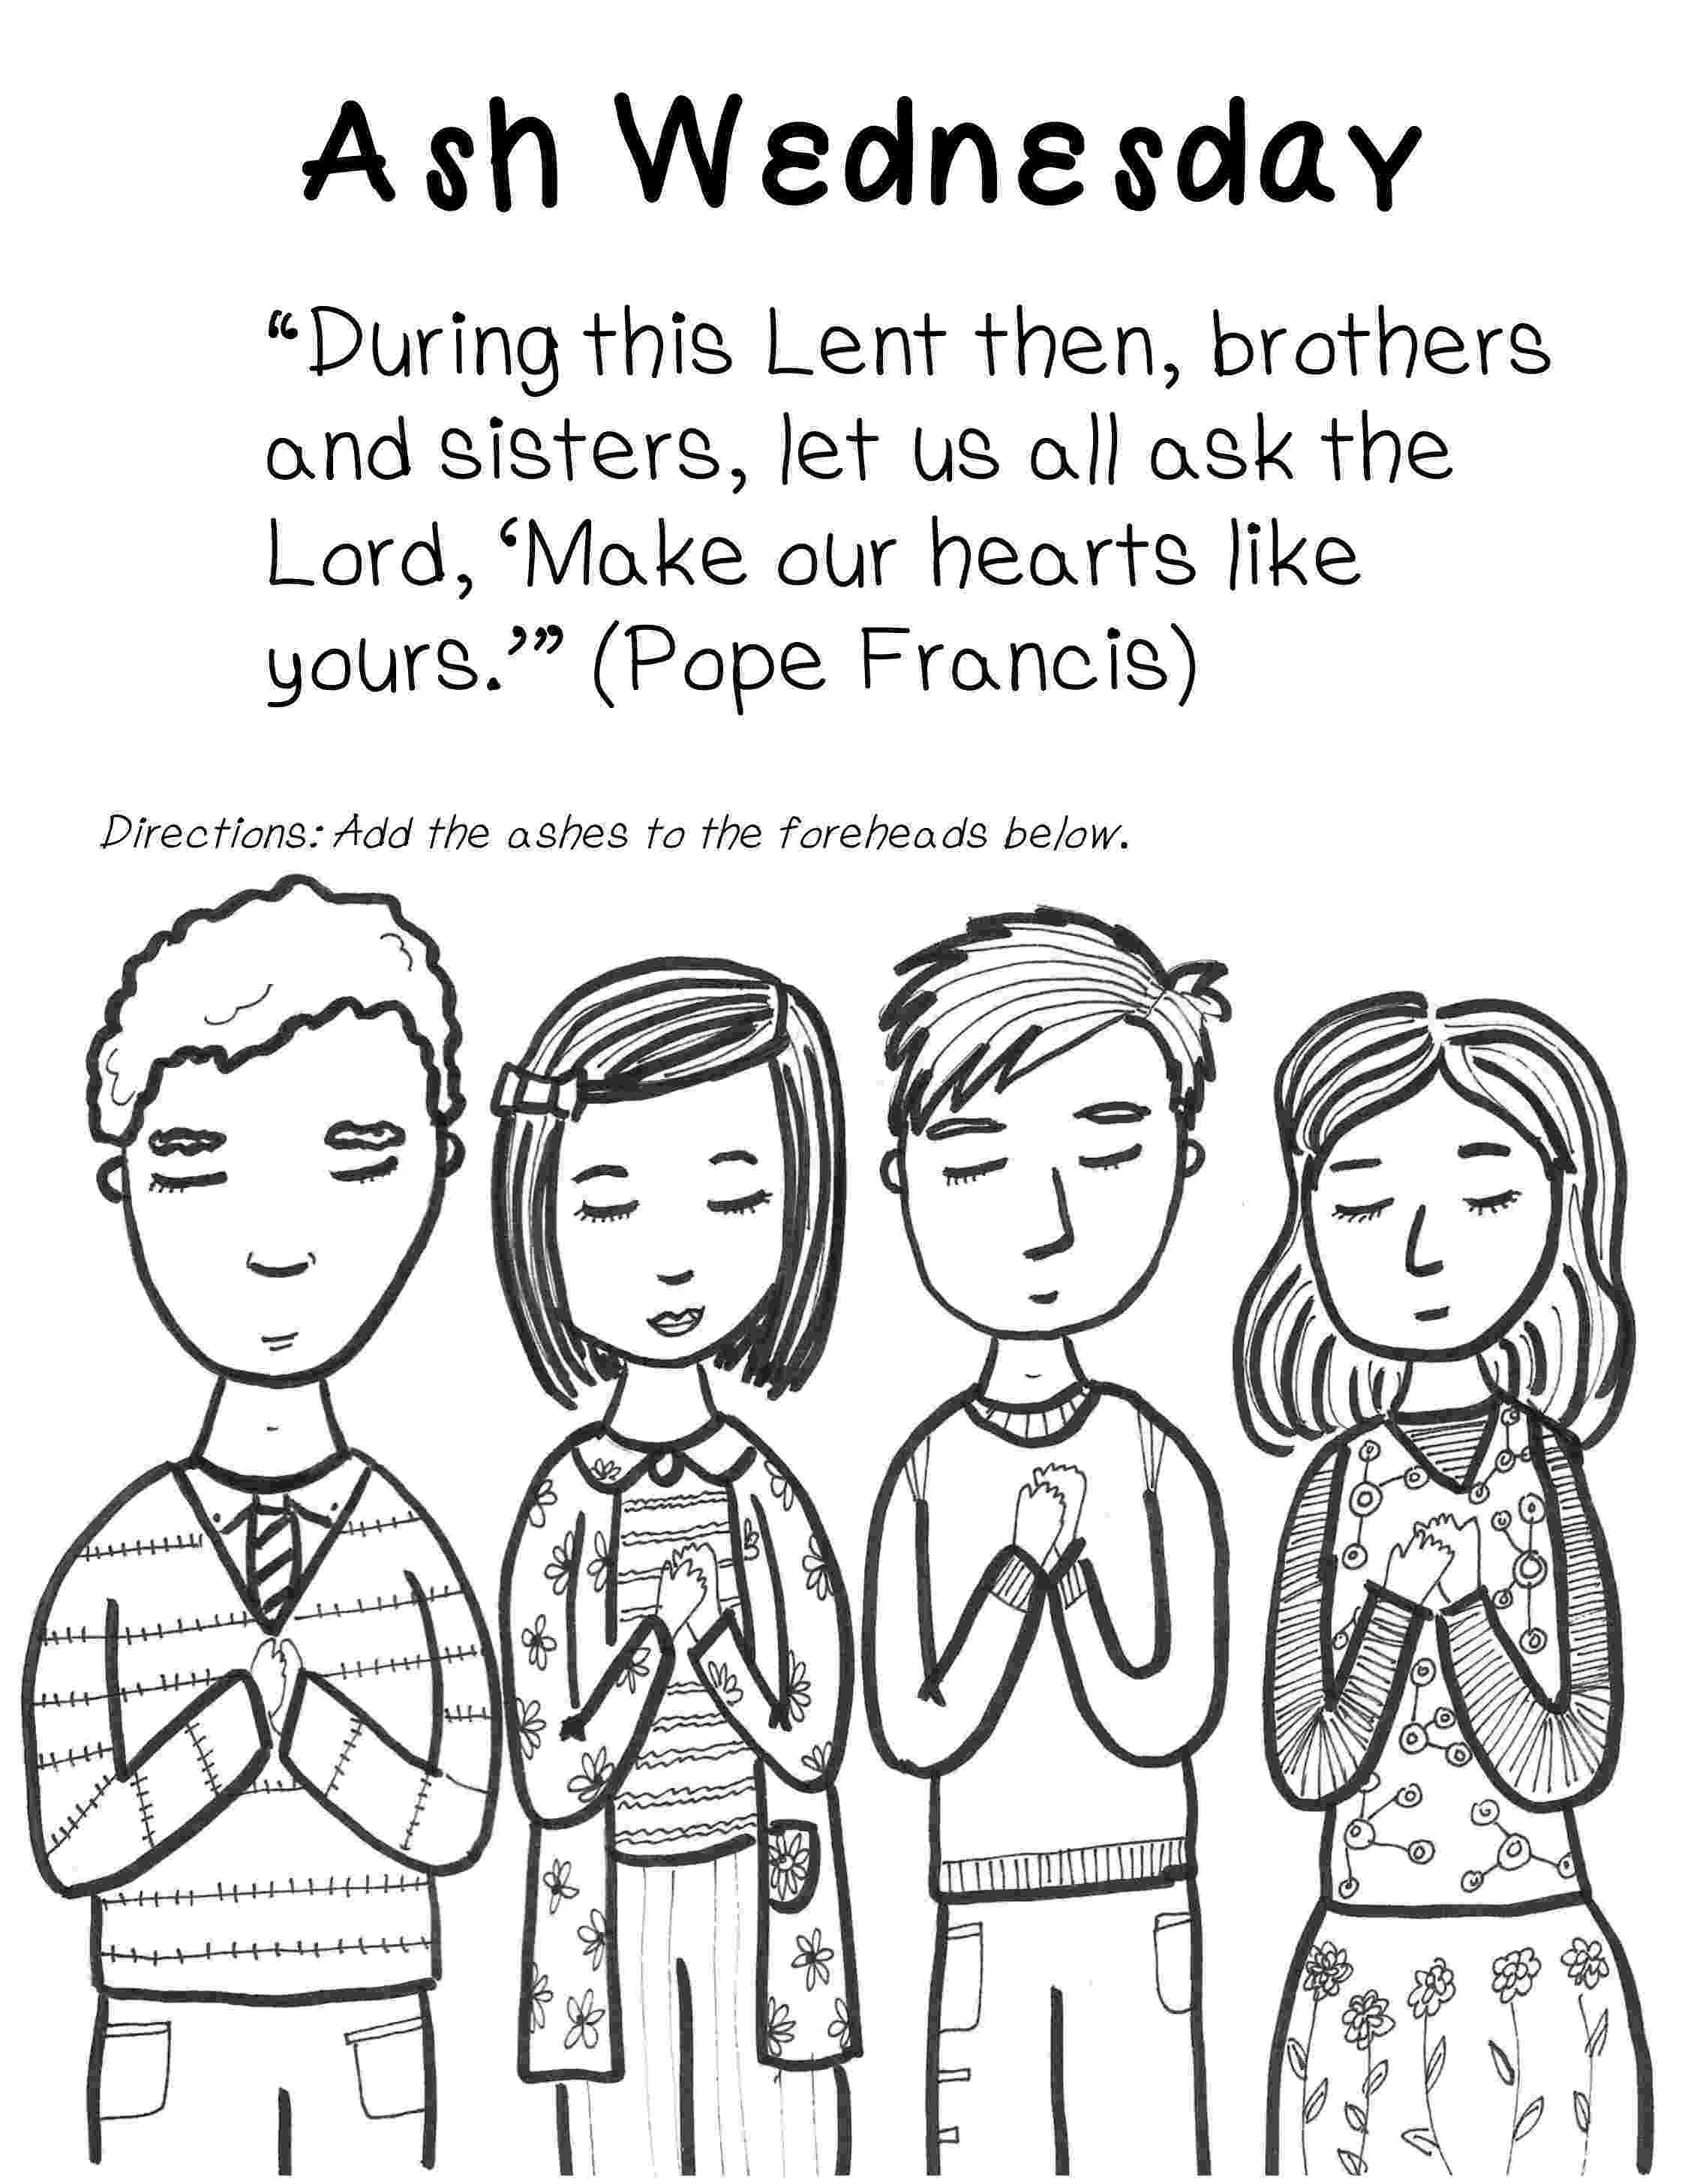 ash wednesday coloring pages ash wednesday coloring page pages coloring ash wednesday